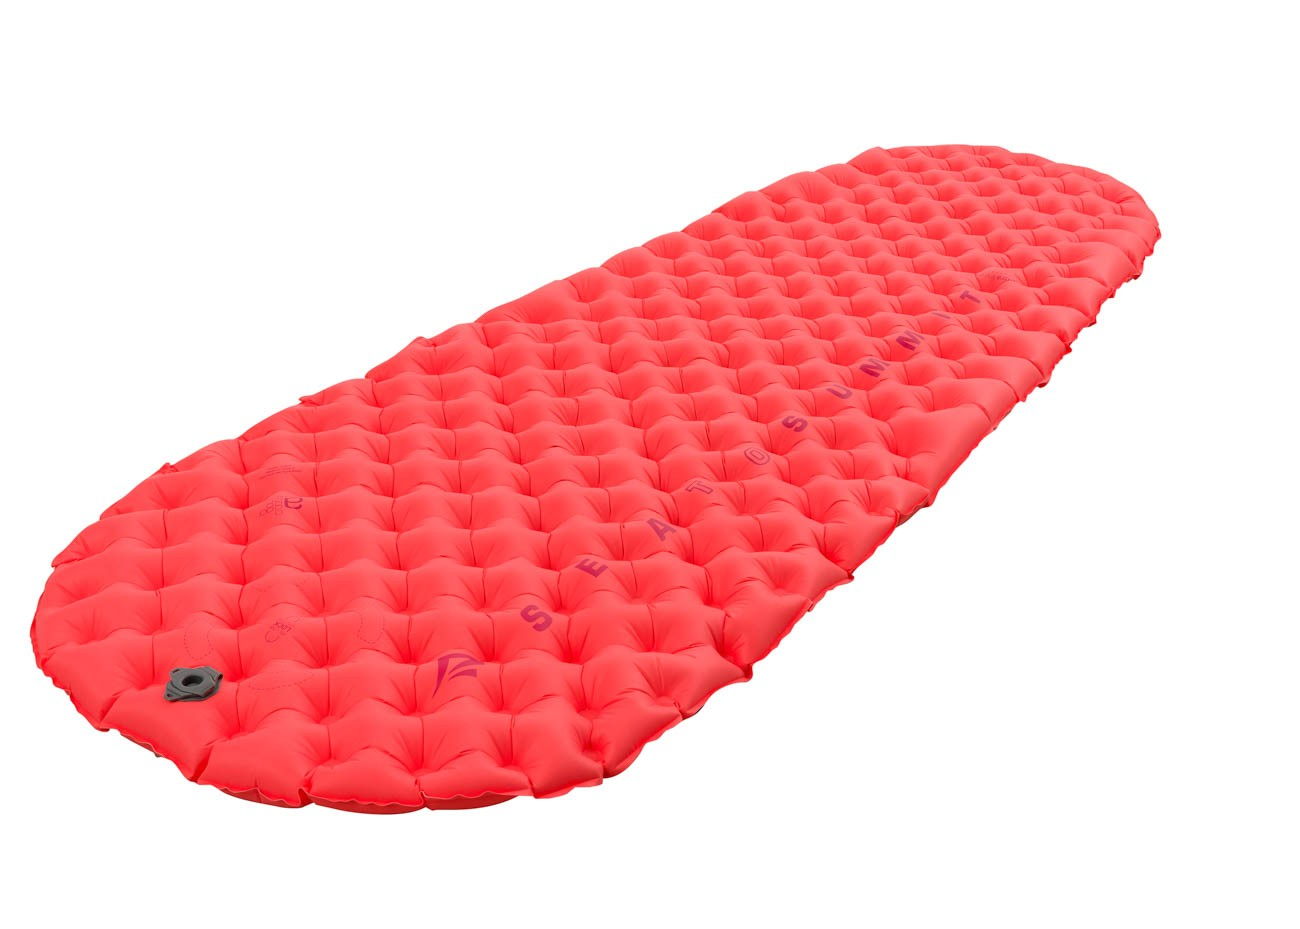 SEA TO SUMMIT Matelas gonflant ultra léger isolé Femme ULTRA LIGHT INSULATED W